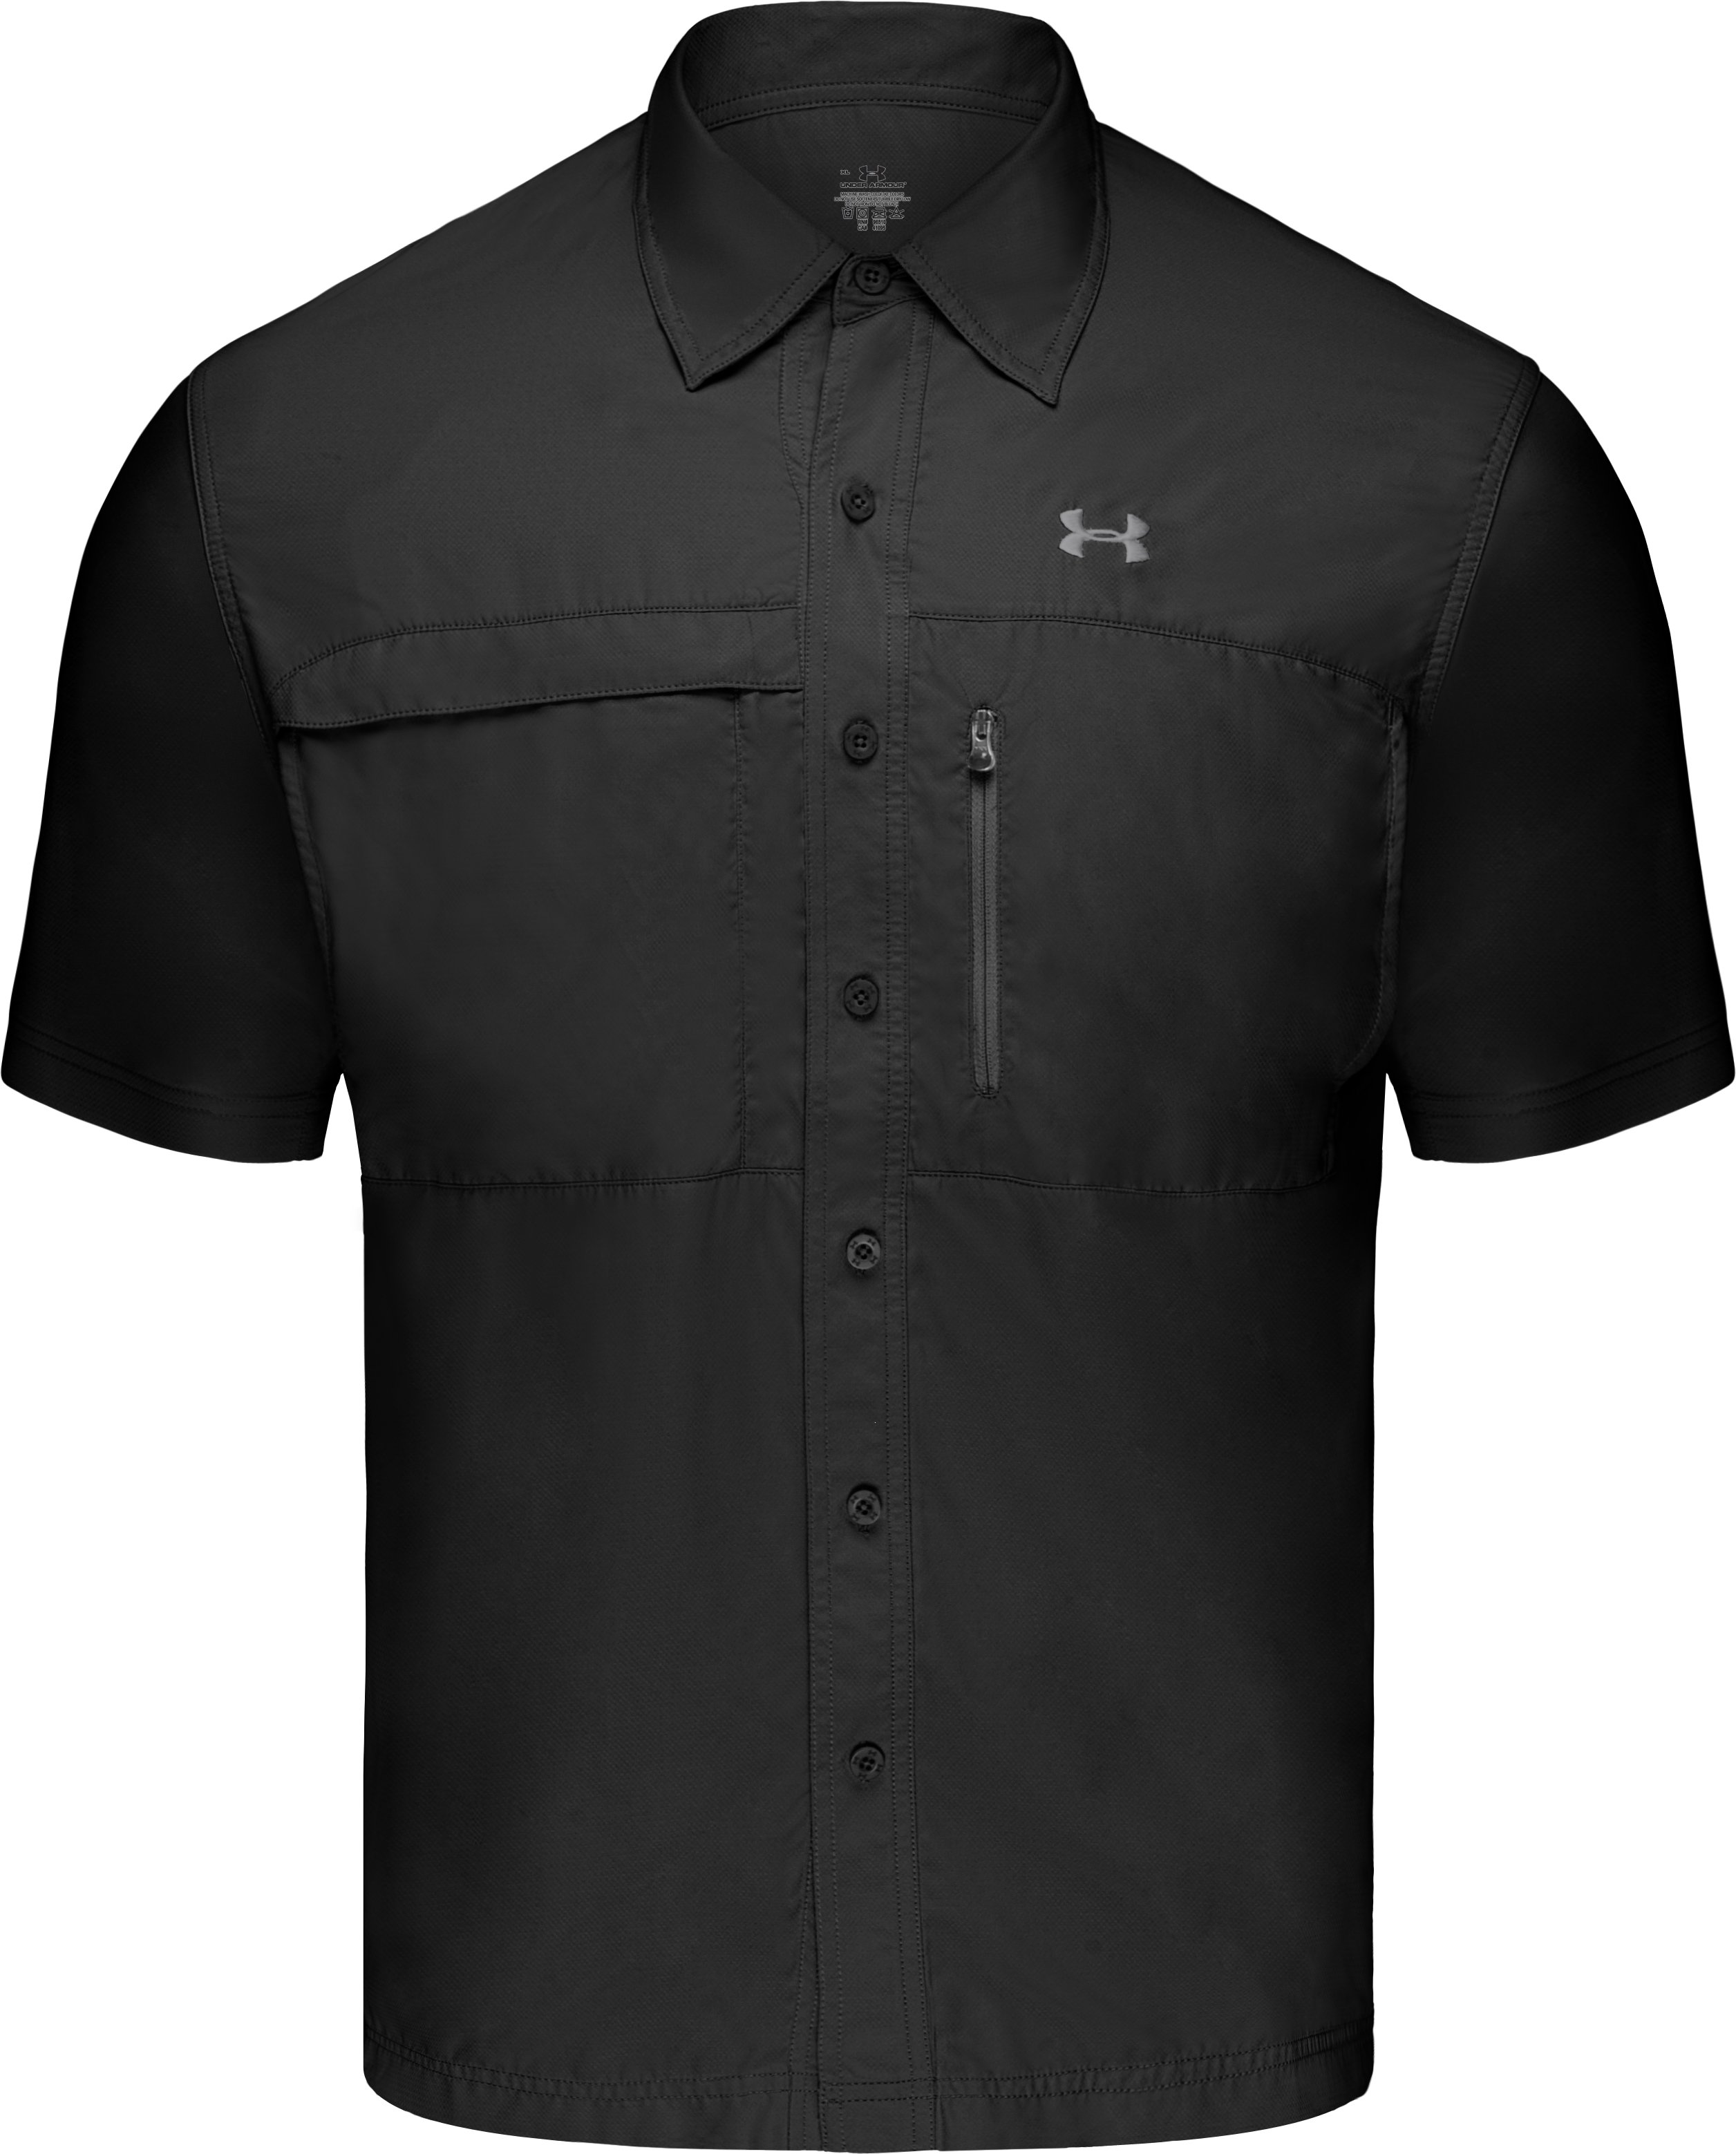 Men's Flats Guide Short Sleeve Shirt, Black , undefined